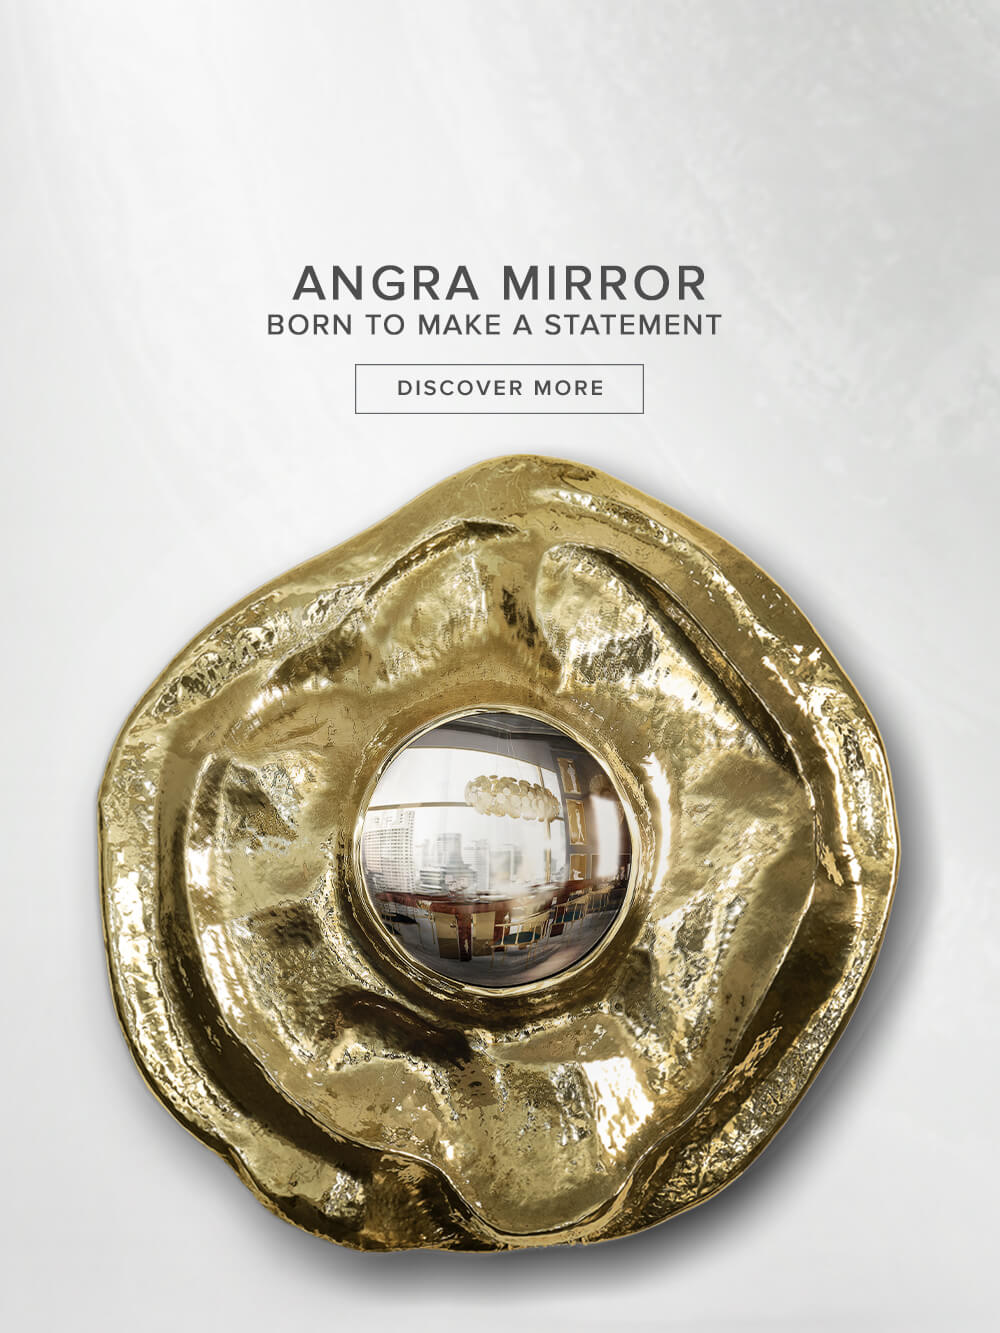 Angra Mirror - Born to Make a Statement - Discover More